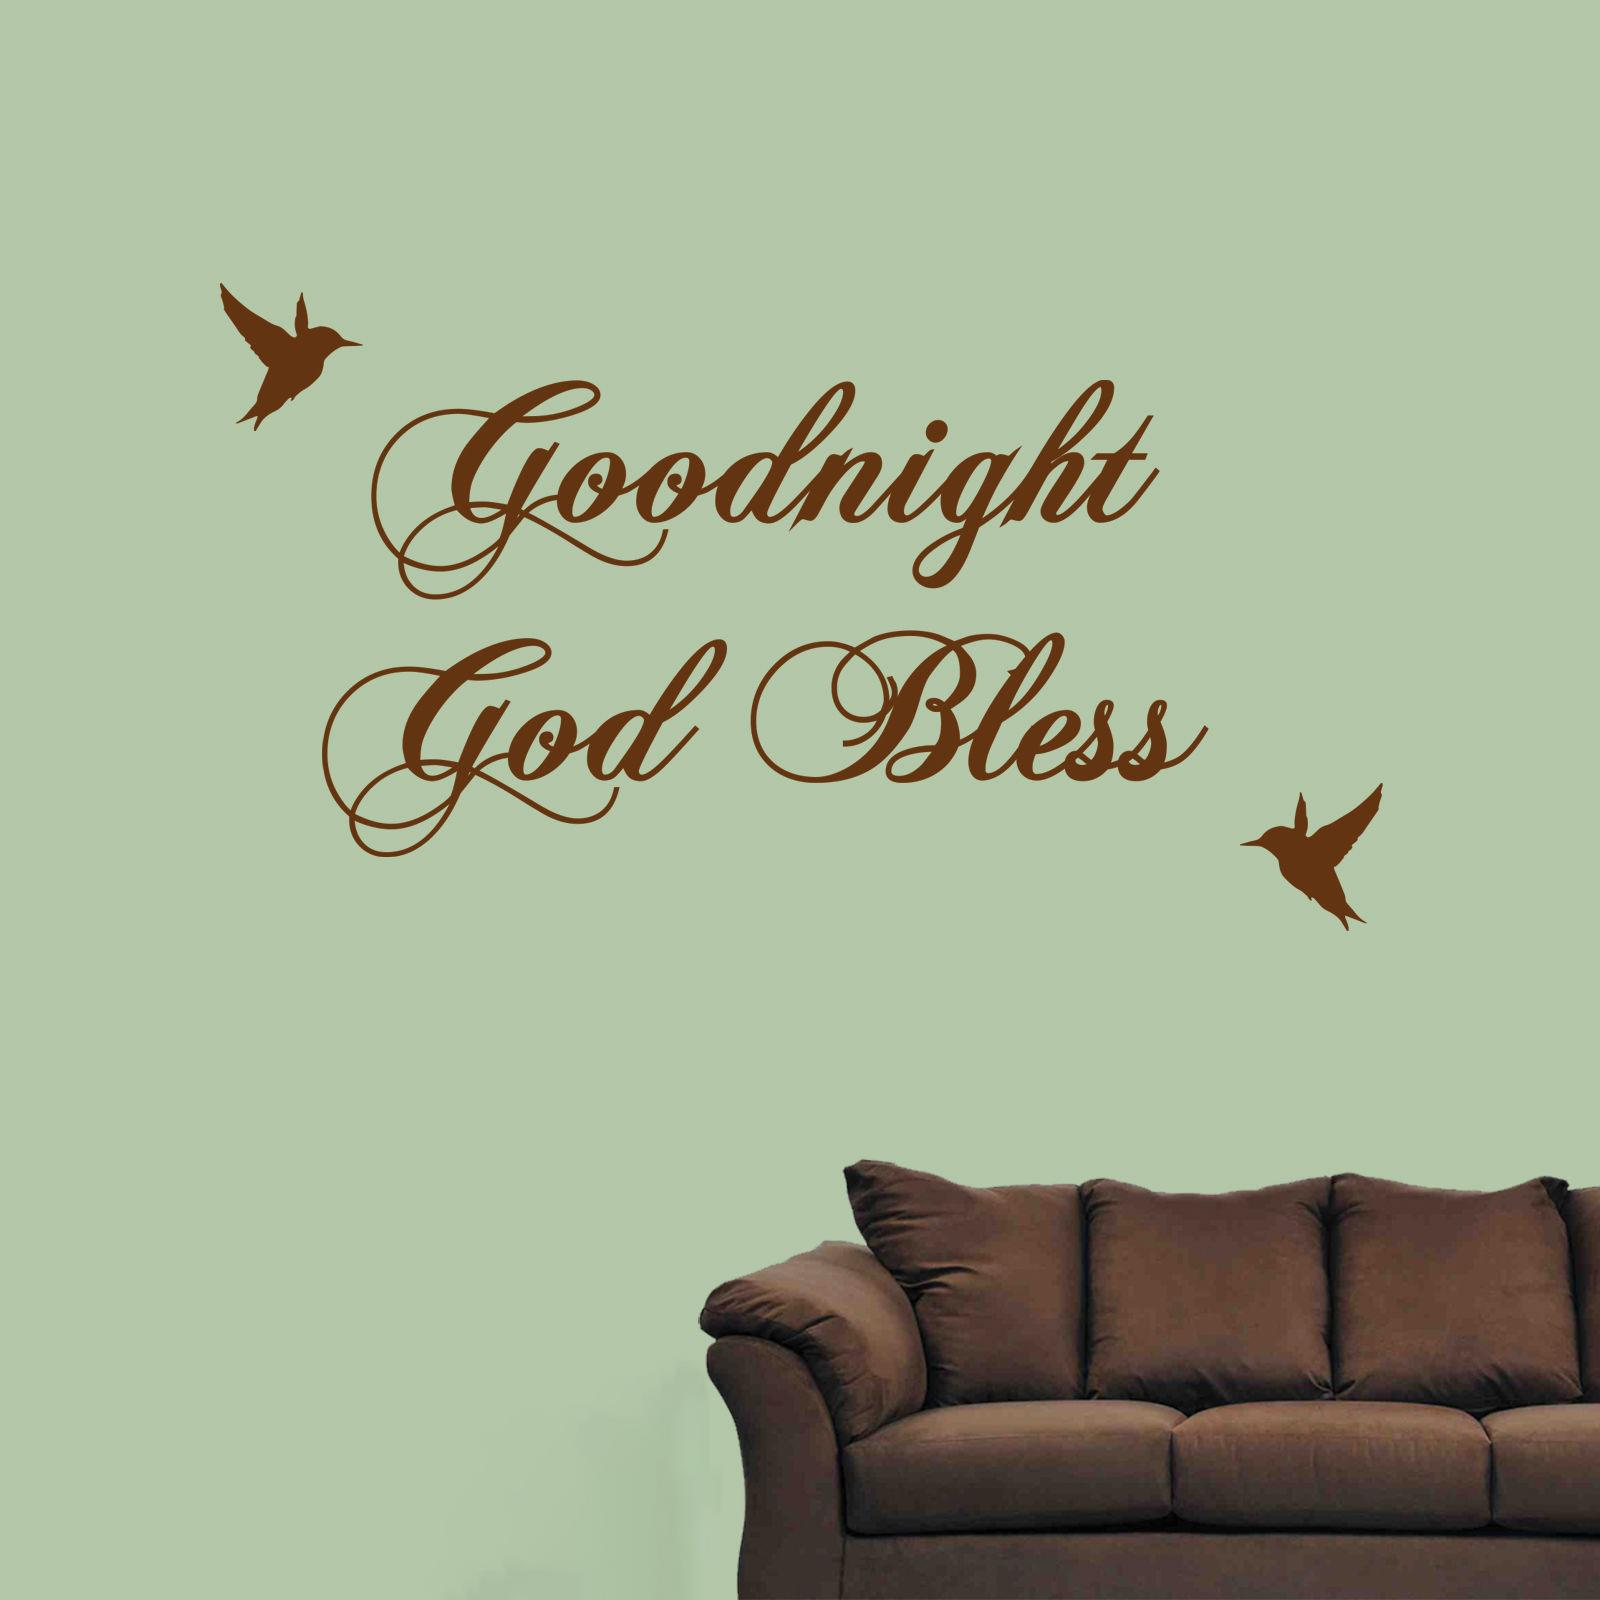 Goodnight God Bless Wall Sticker Quote Art Decal Birds Art Painting